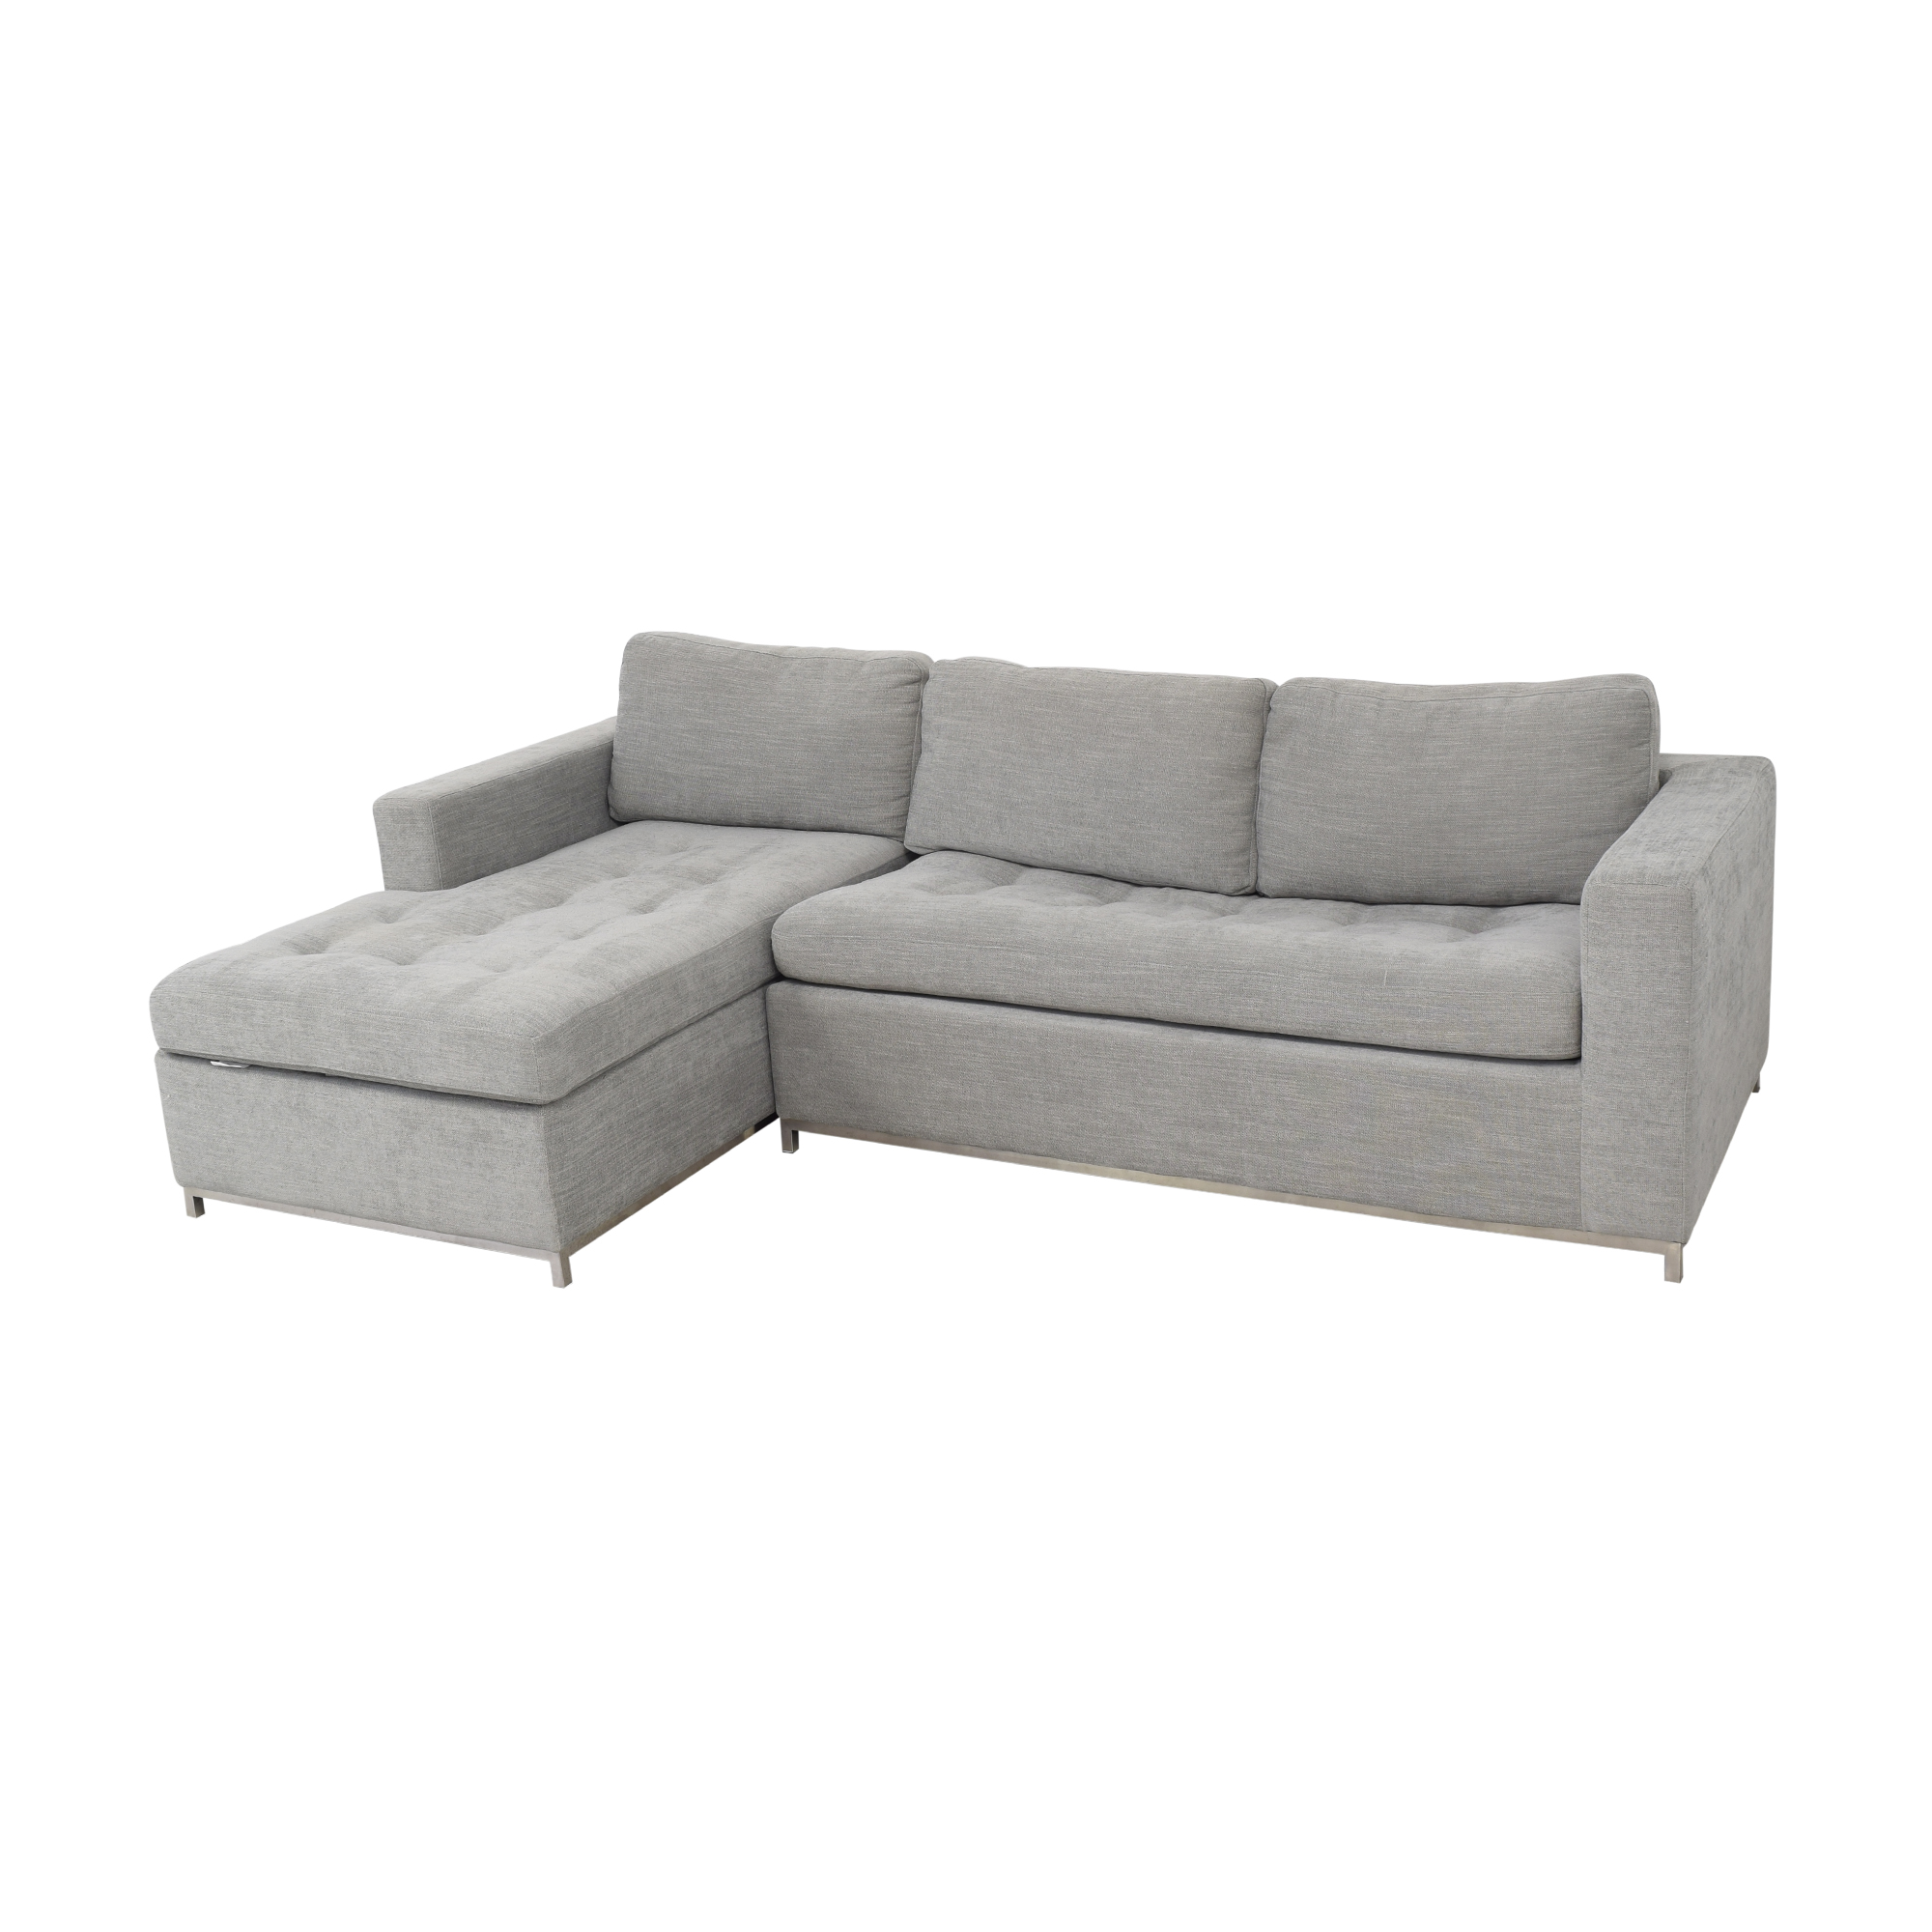 Article Article Soma Sofa Bed dimensions